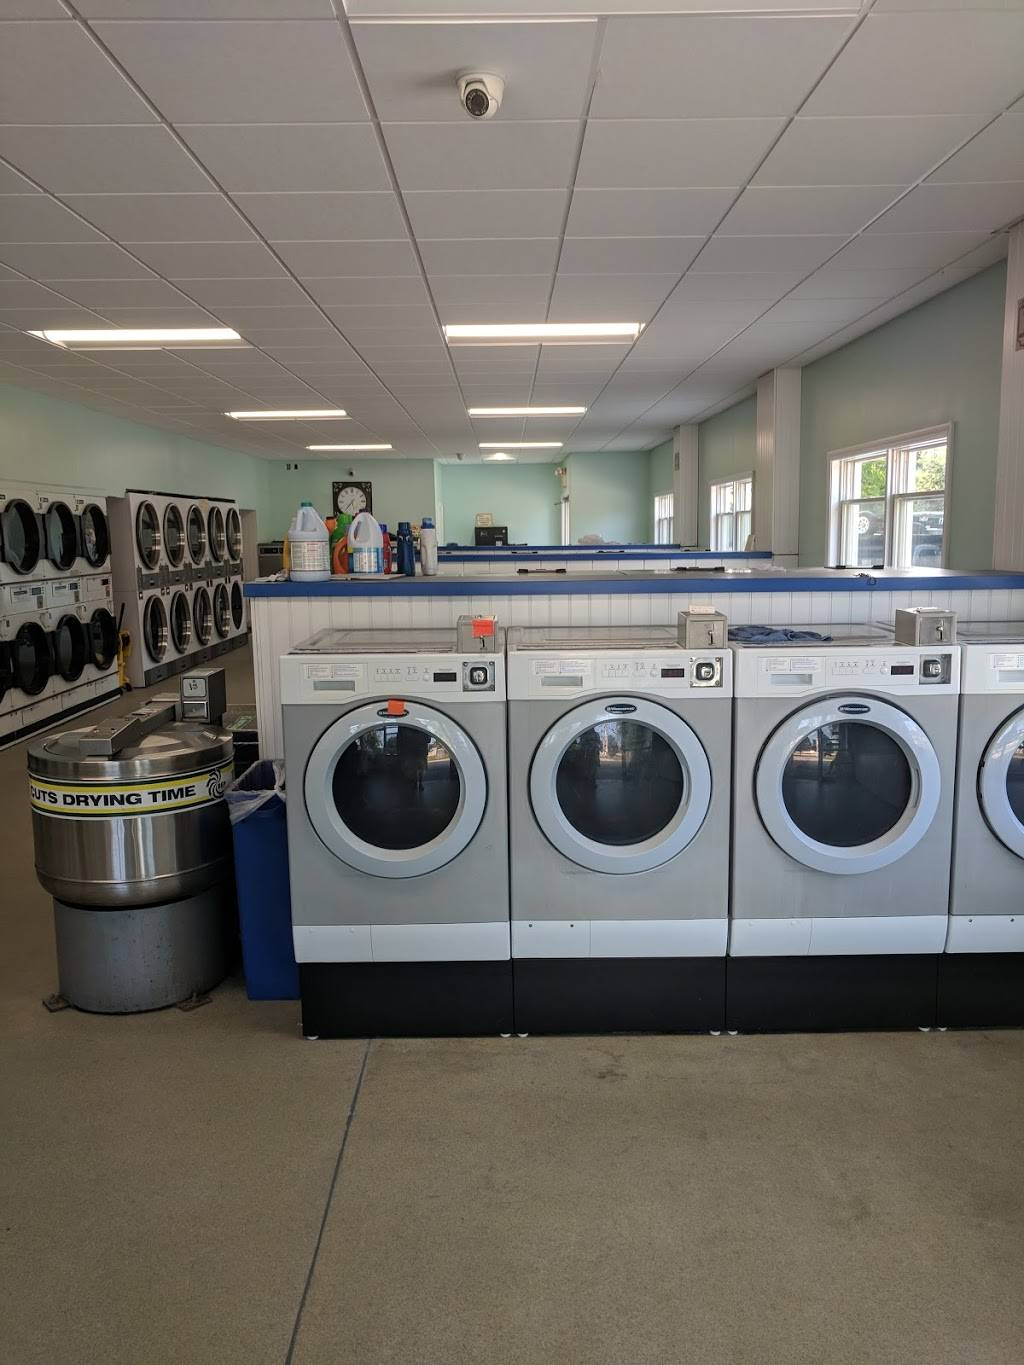 Laundromat - laundry  | Photo 2 of 4 | Address: 845 Lafayette Rd, Seabrook, NH 03874, USA